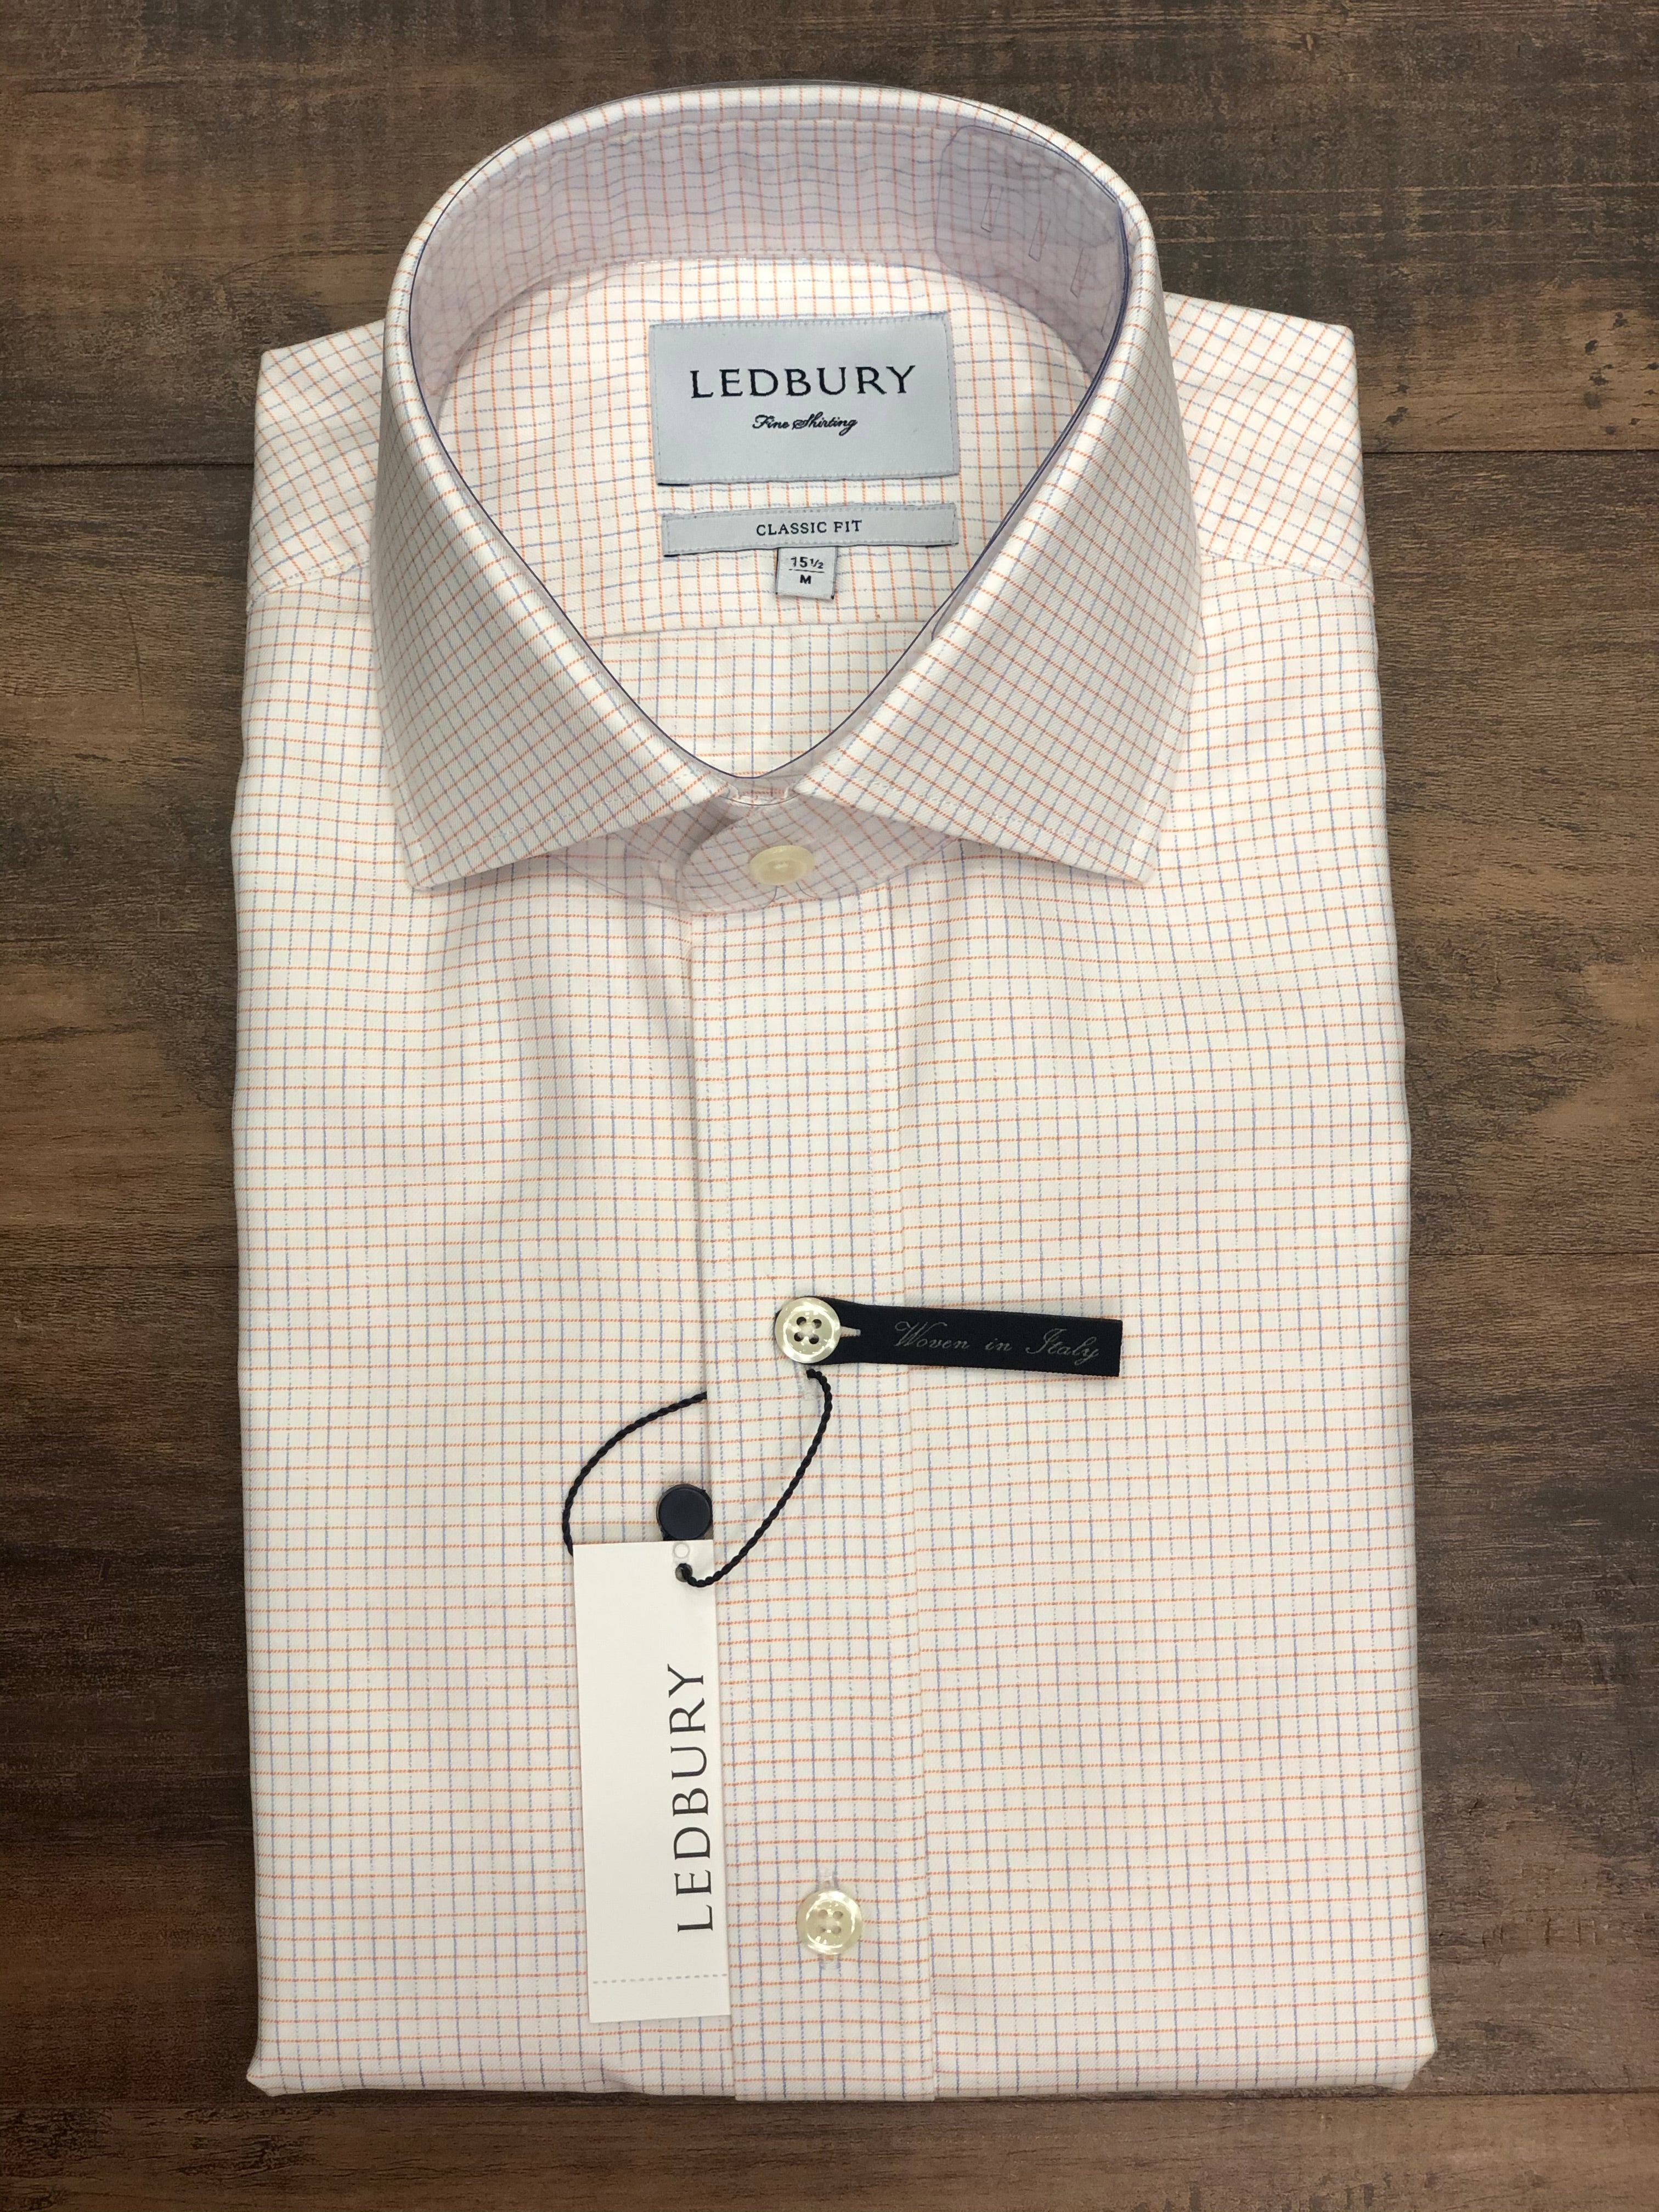 Ledbury Kentland Dress/Sport Shirt